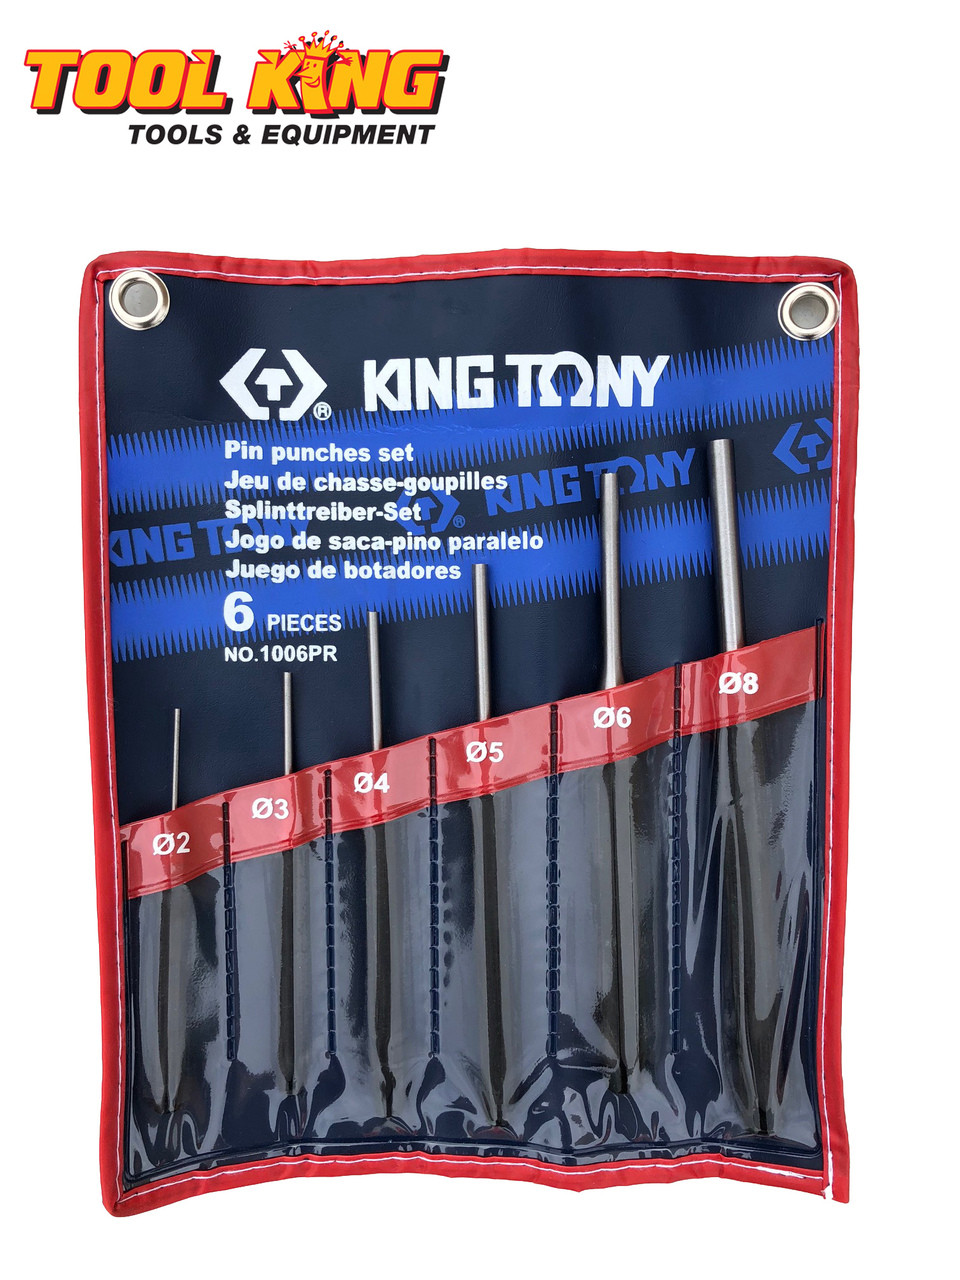 Also available in clear front tool roll